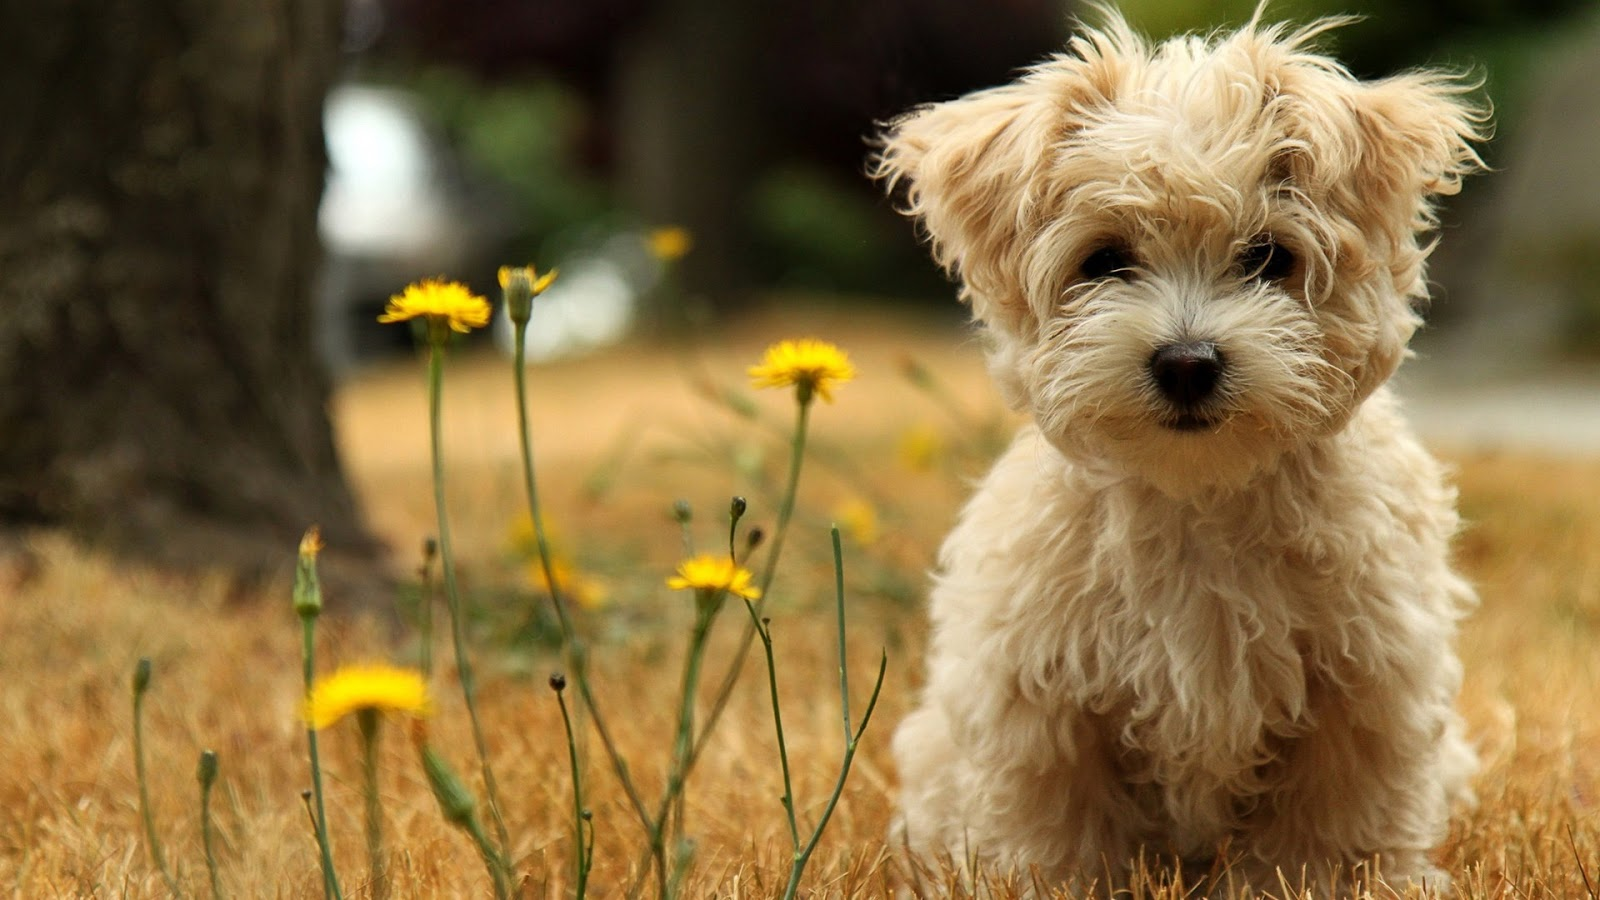 HD Wallpapers Fine: cute dog | baby dog hd wallpapers free ...